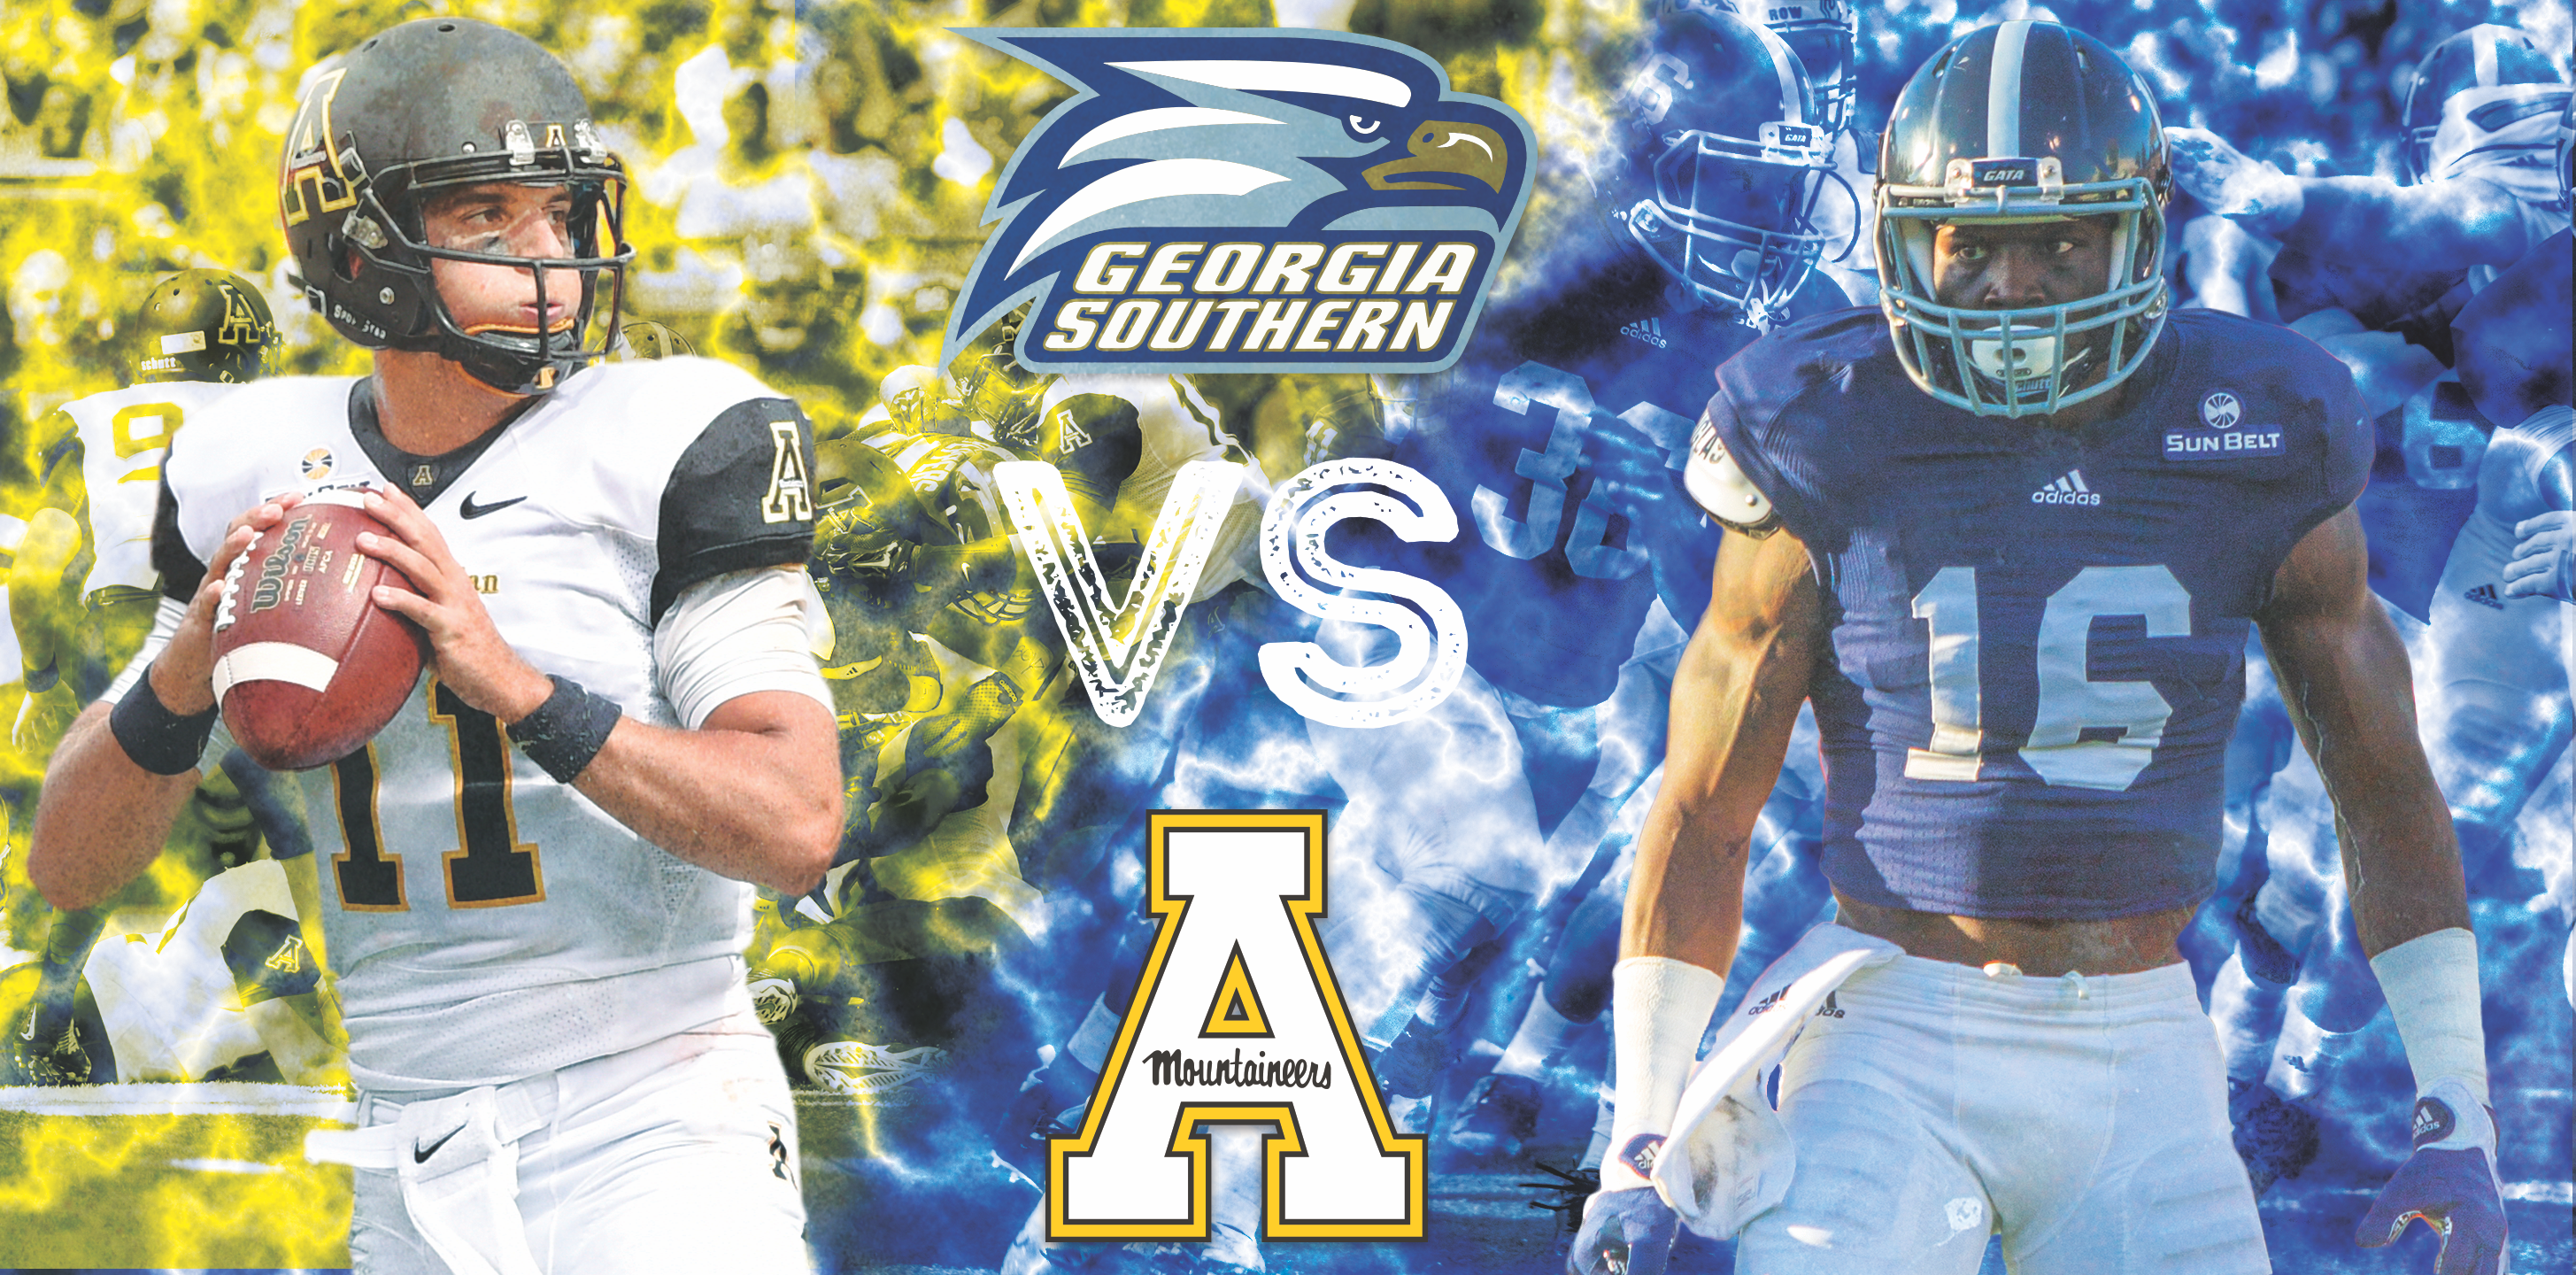 Head to Head: Why Georgia Southern will kick Apps